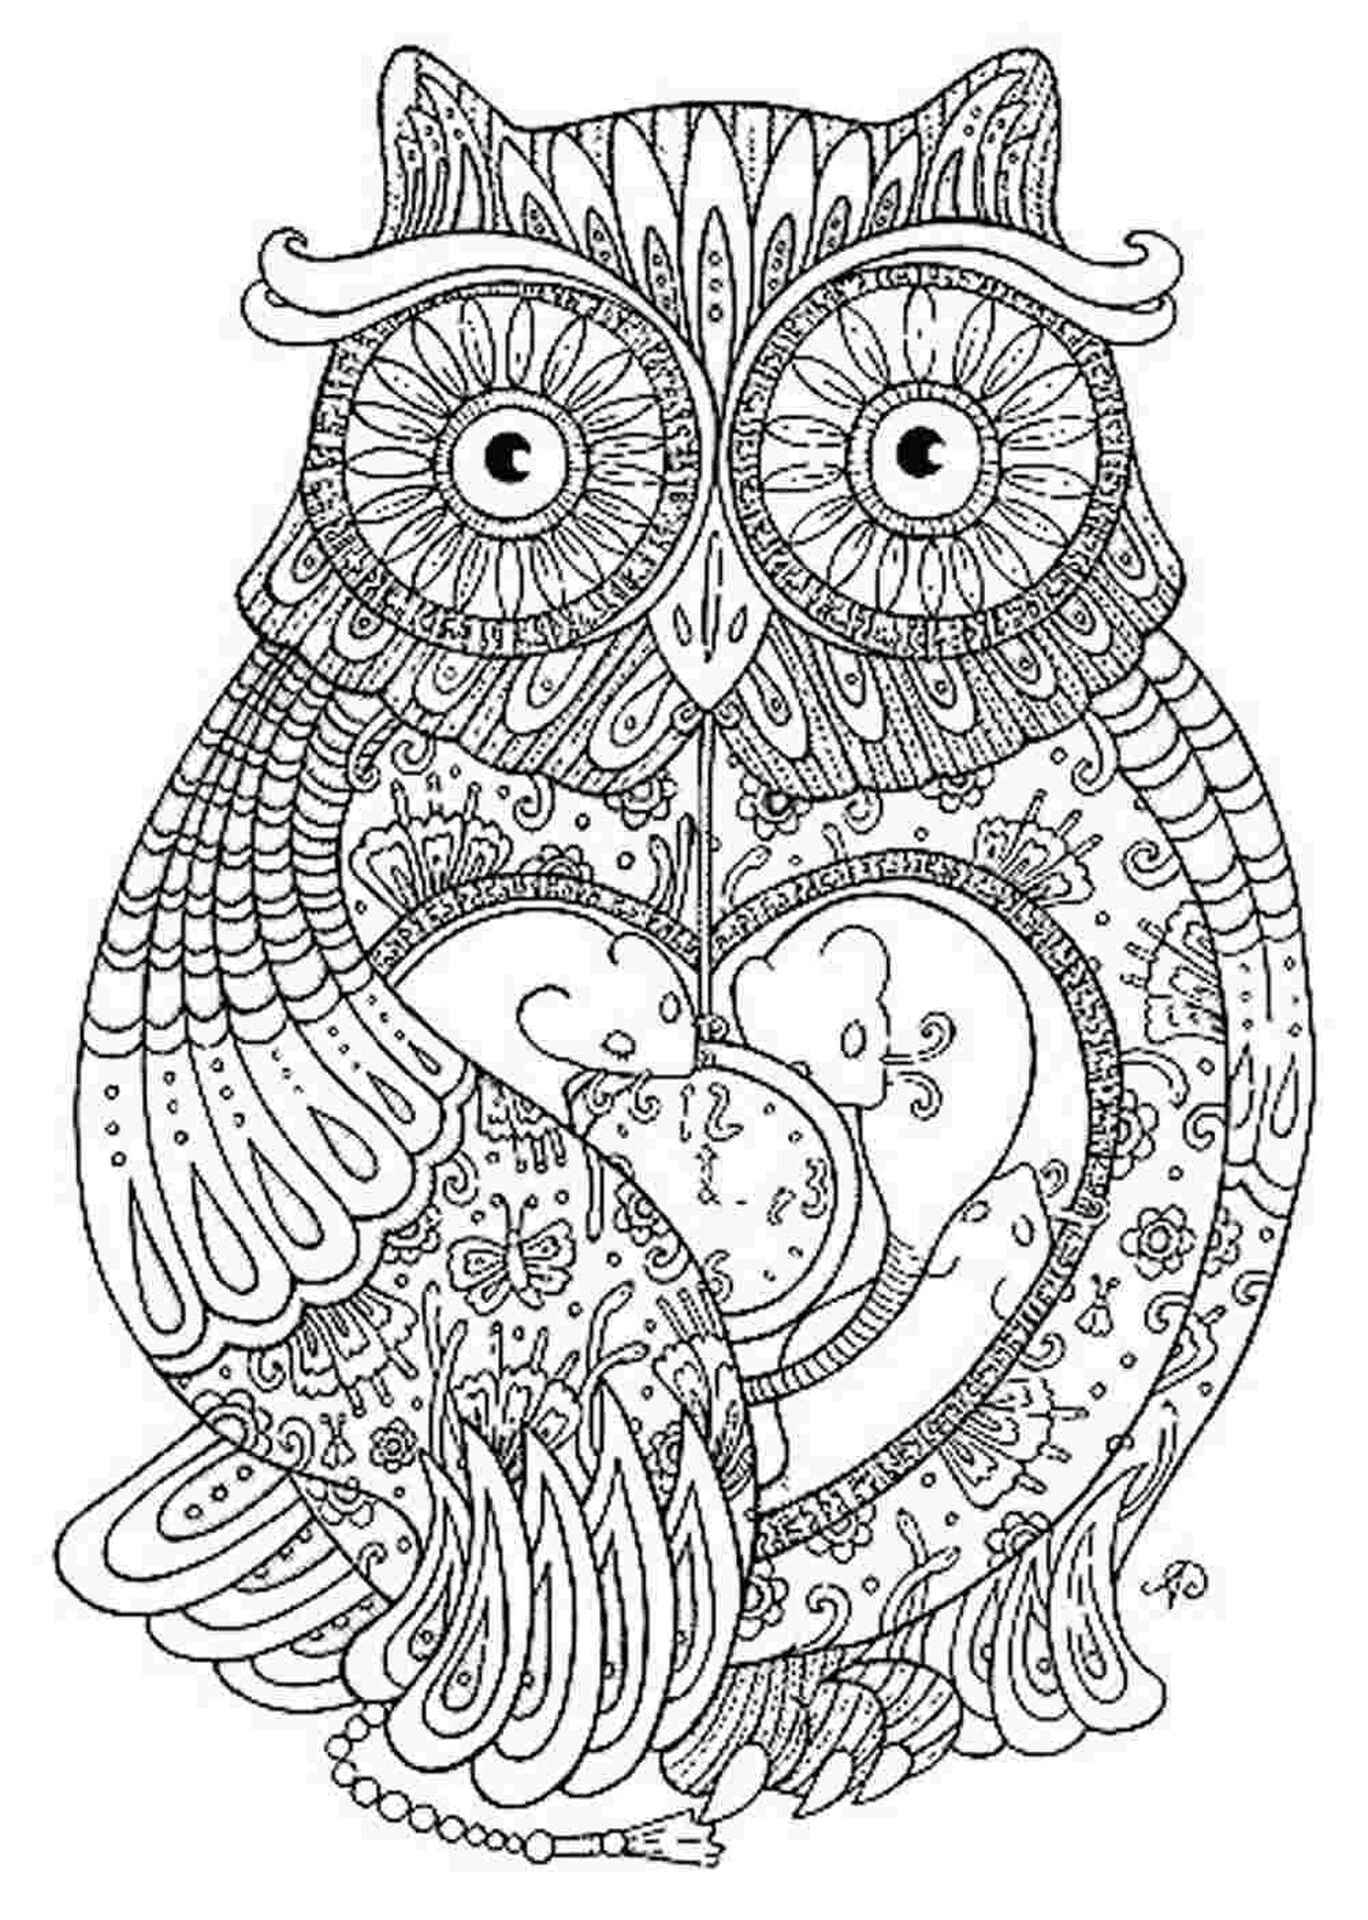 Detailed Owl To Color For Adults